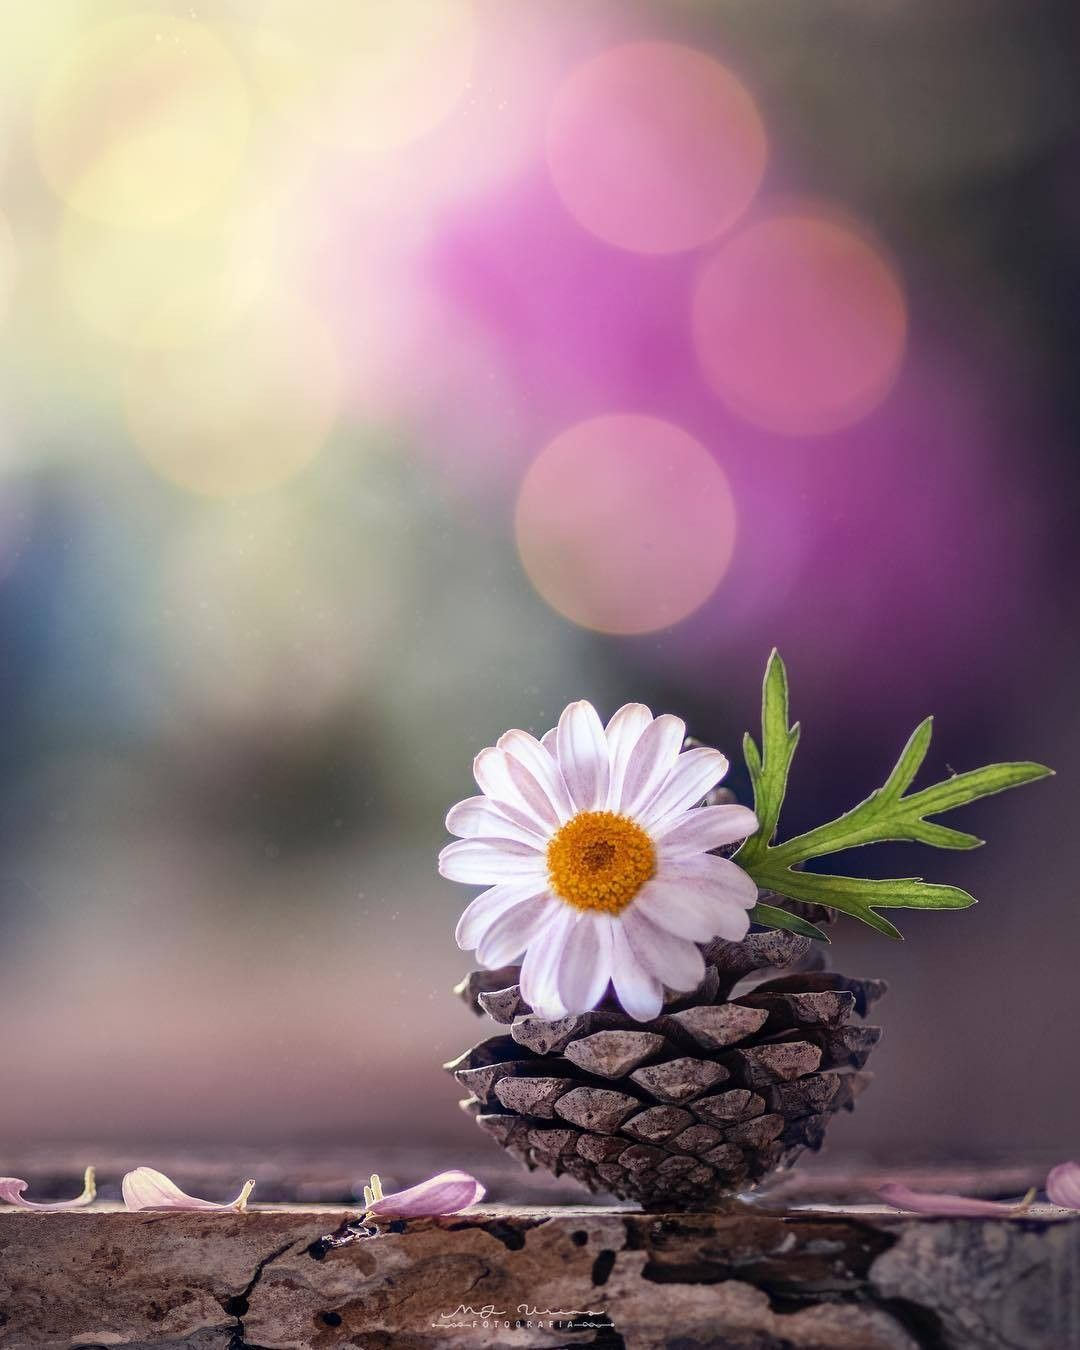 Pin By Asmaa On Daisies Flowers Photography Beautiful Flowers Wallpapers Flower Backgrounds